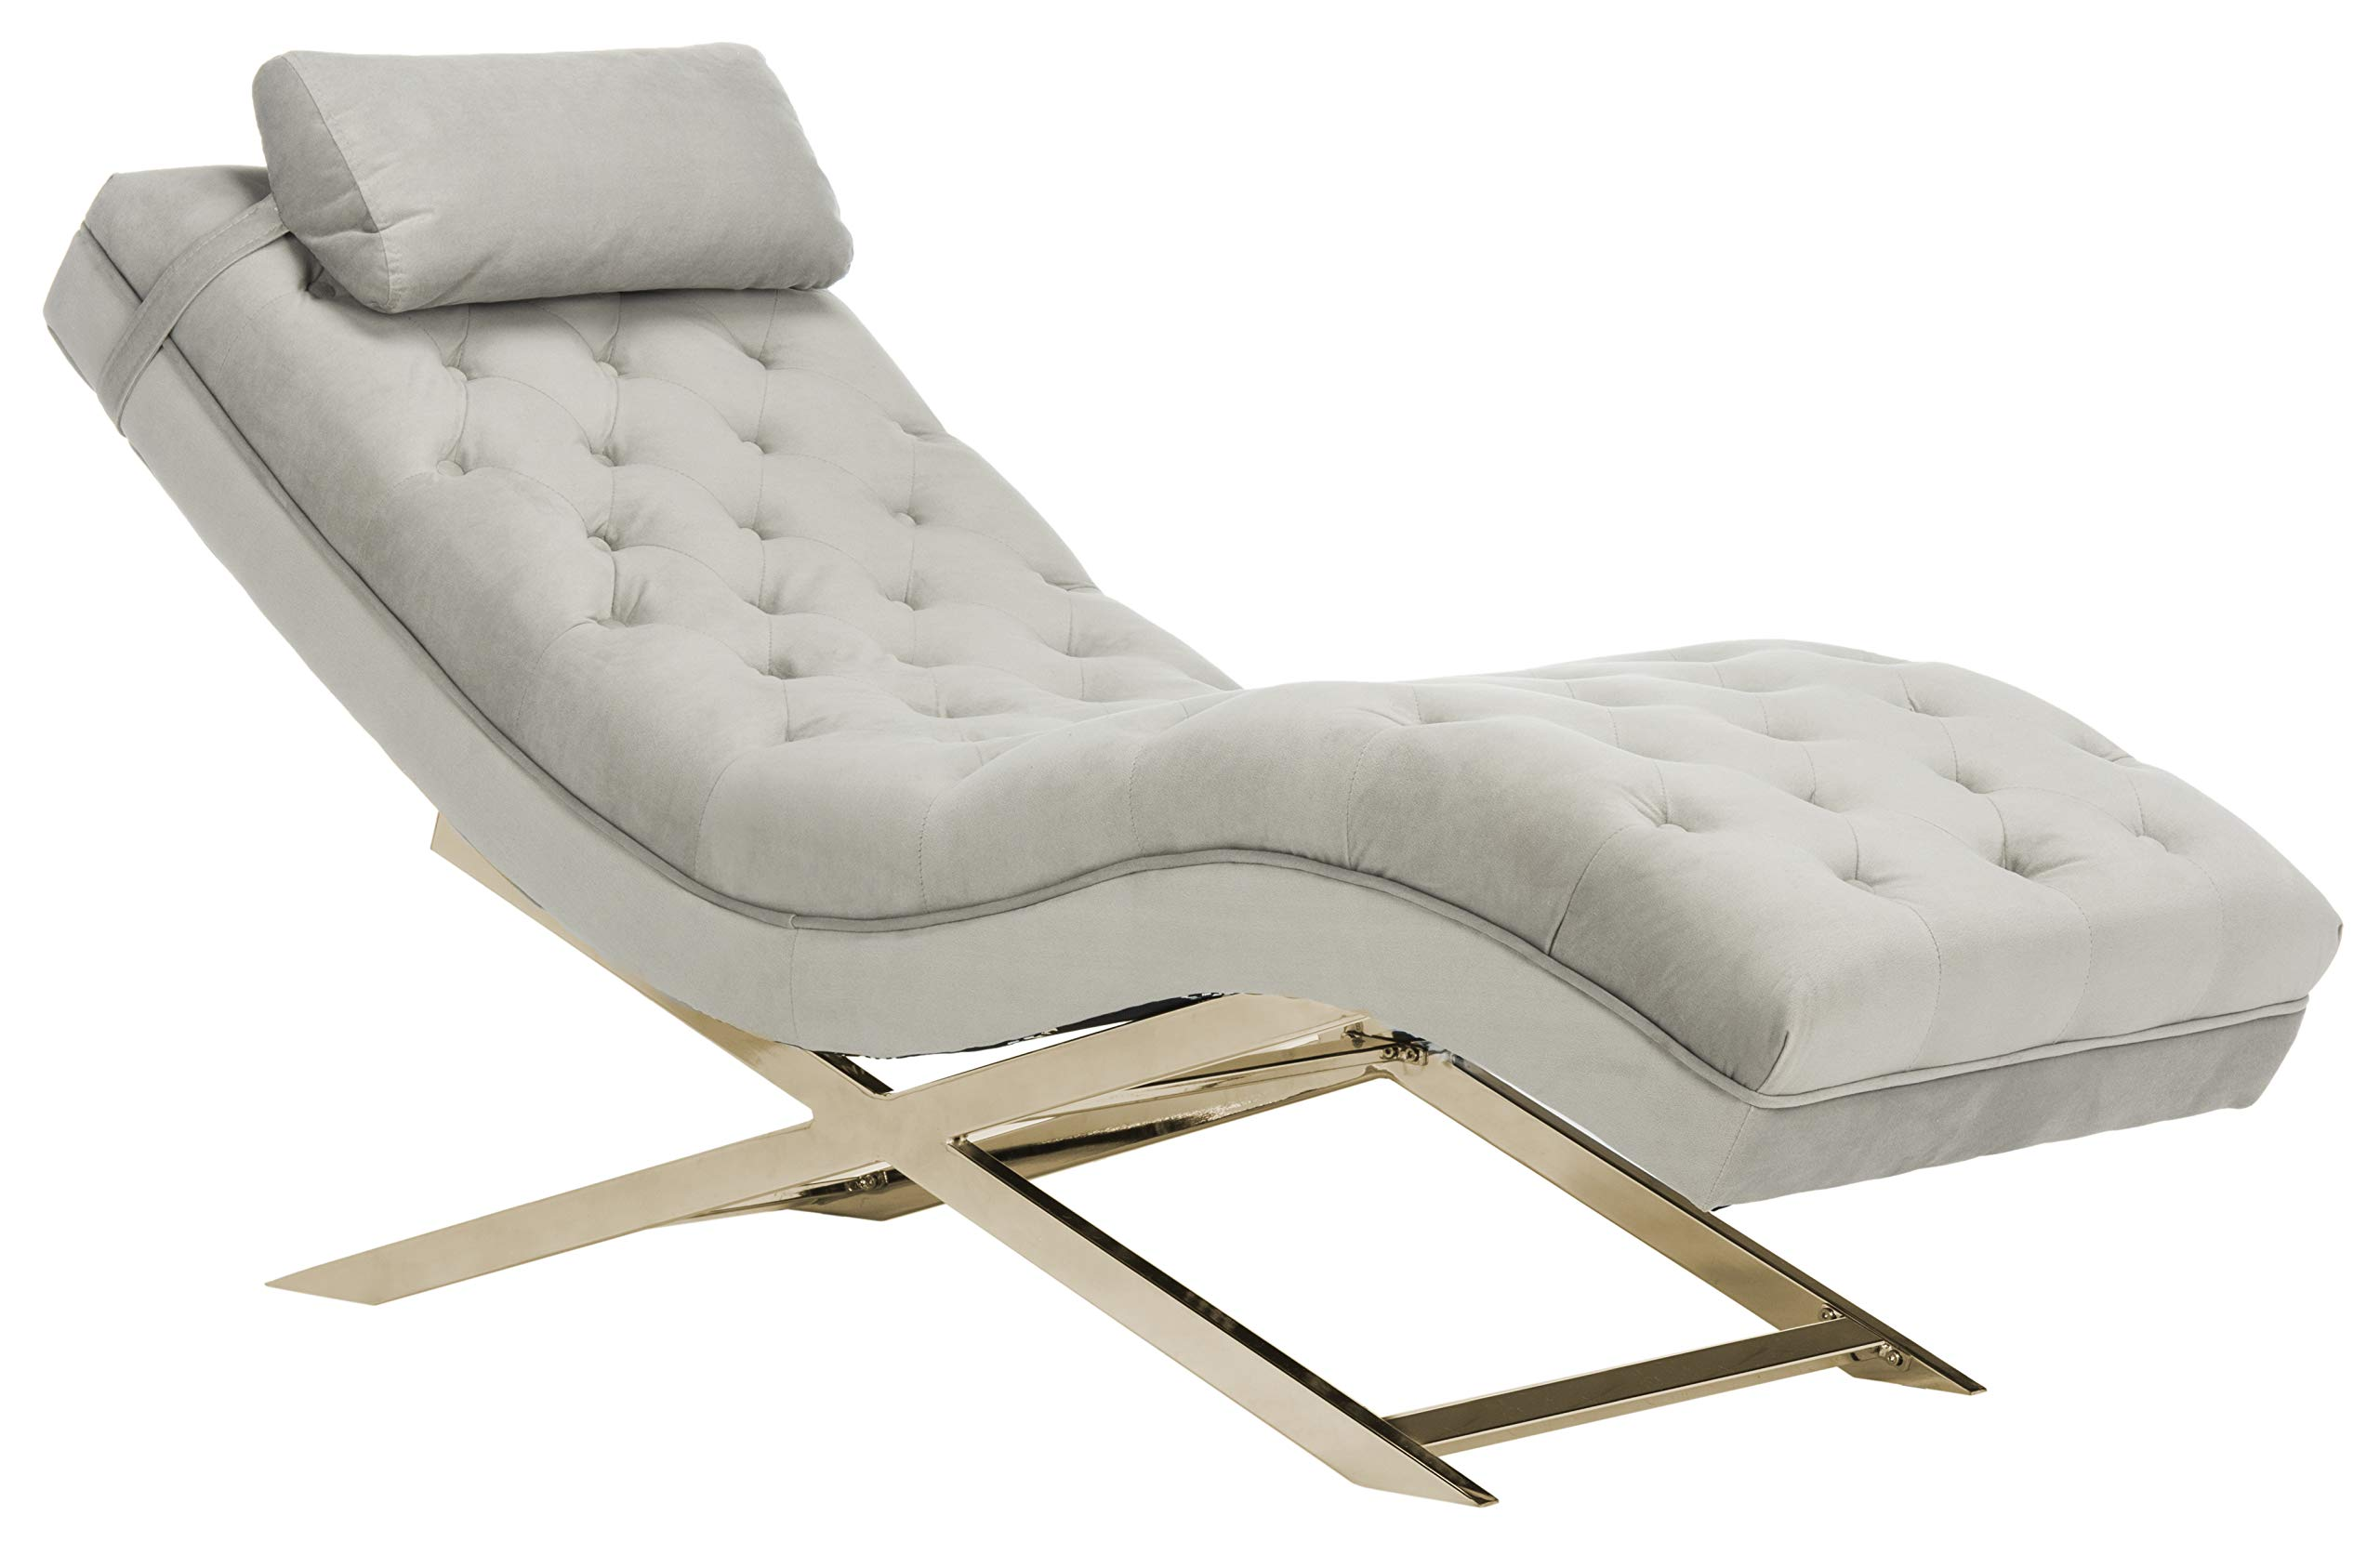 Safavieh Home Collection Monroe Grey Chaise, Gold by Safavieh